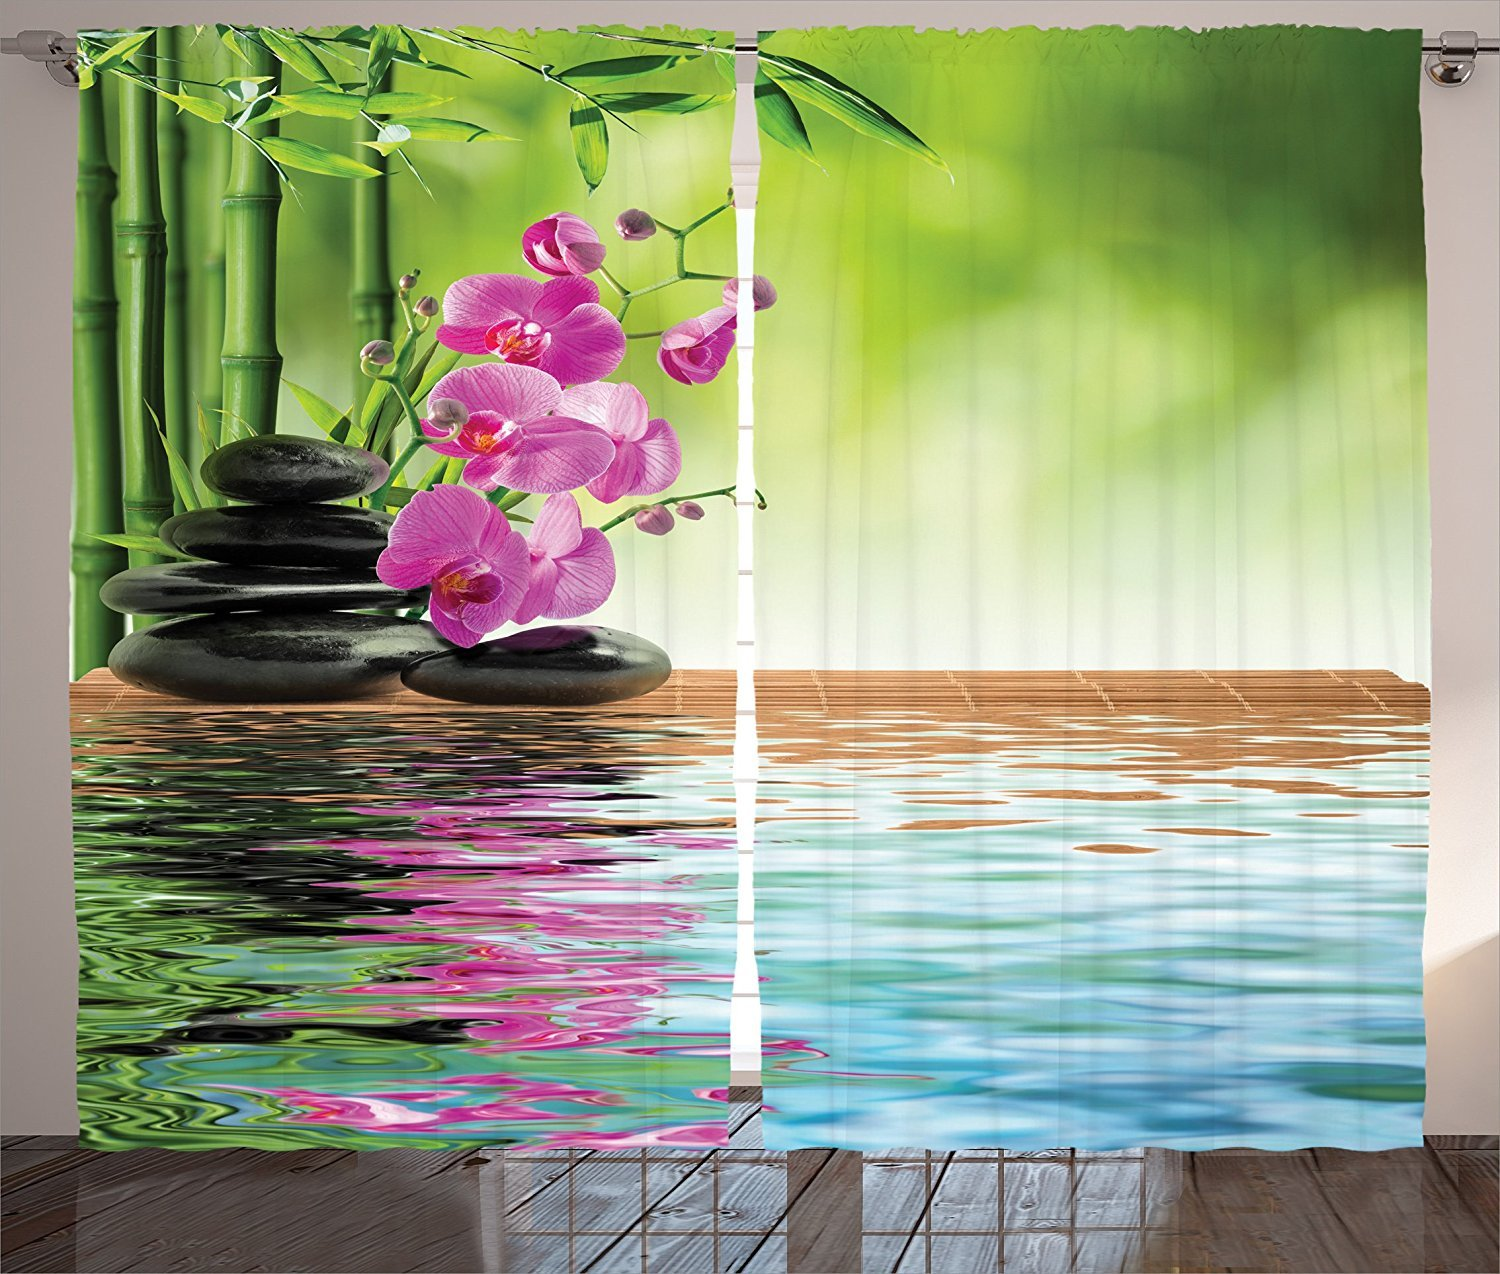 Spa Decor Curtains Orchid Flower Stone Oriental Culture Spirituality Wellness Tropical Holiday Living Room Bedroom Decor 2 Panel Set